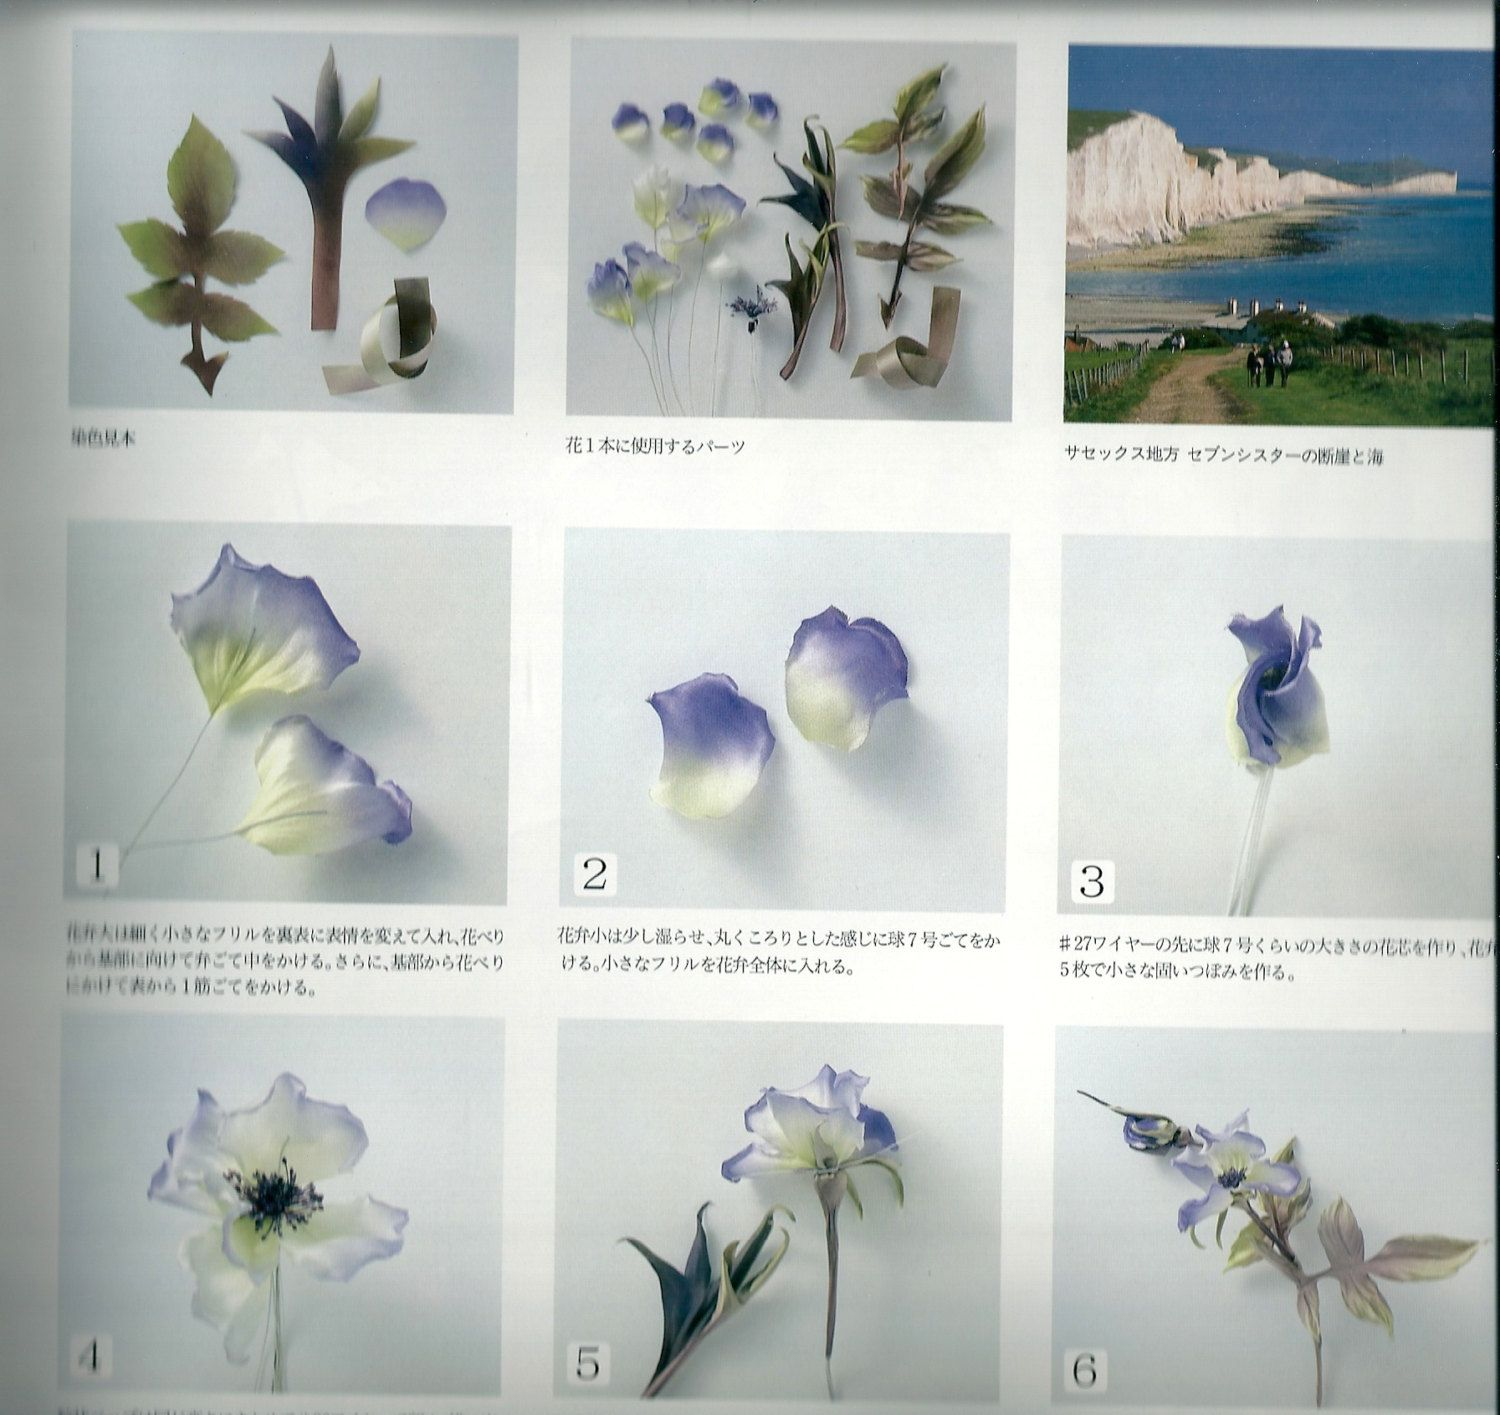 Silk and fabric flower making tutorials japanese somebana 50 e japanese flower making e books somebana techniques millinery tutorial floral art 3000 via etsy mightylinksfo